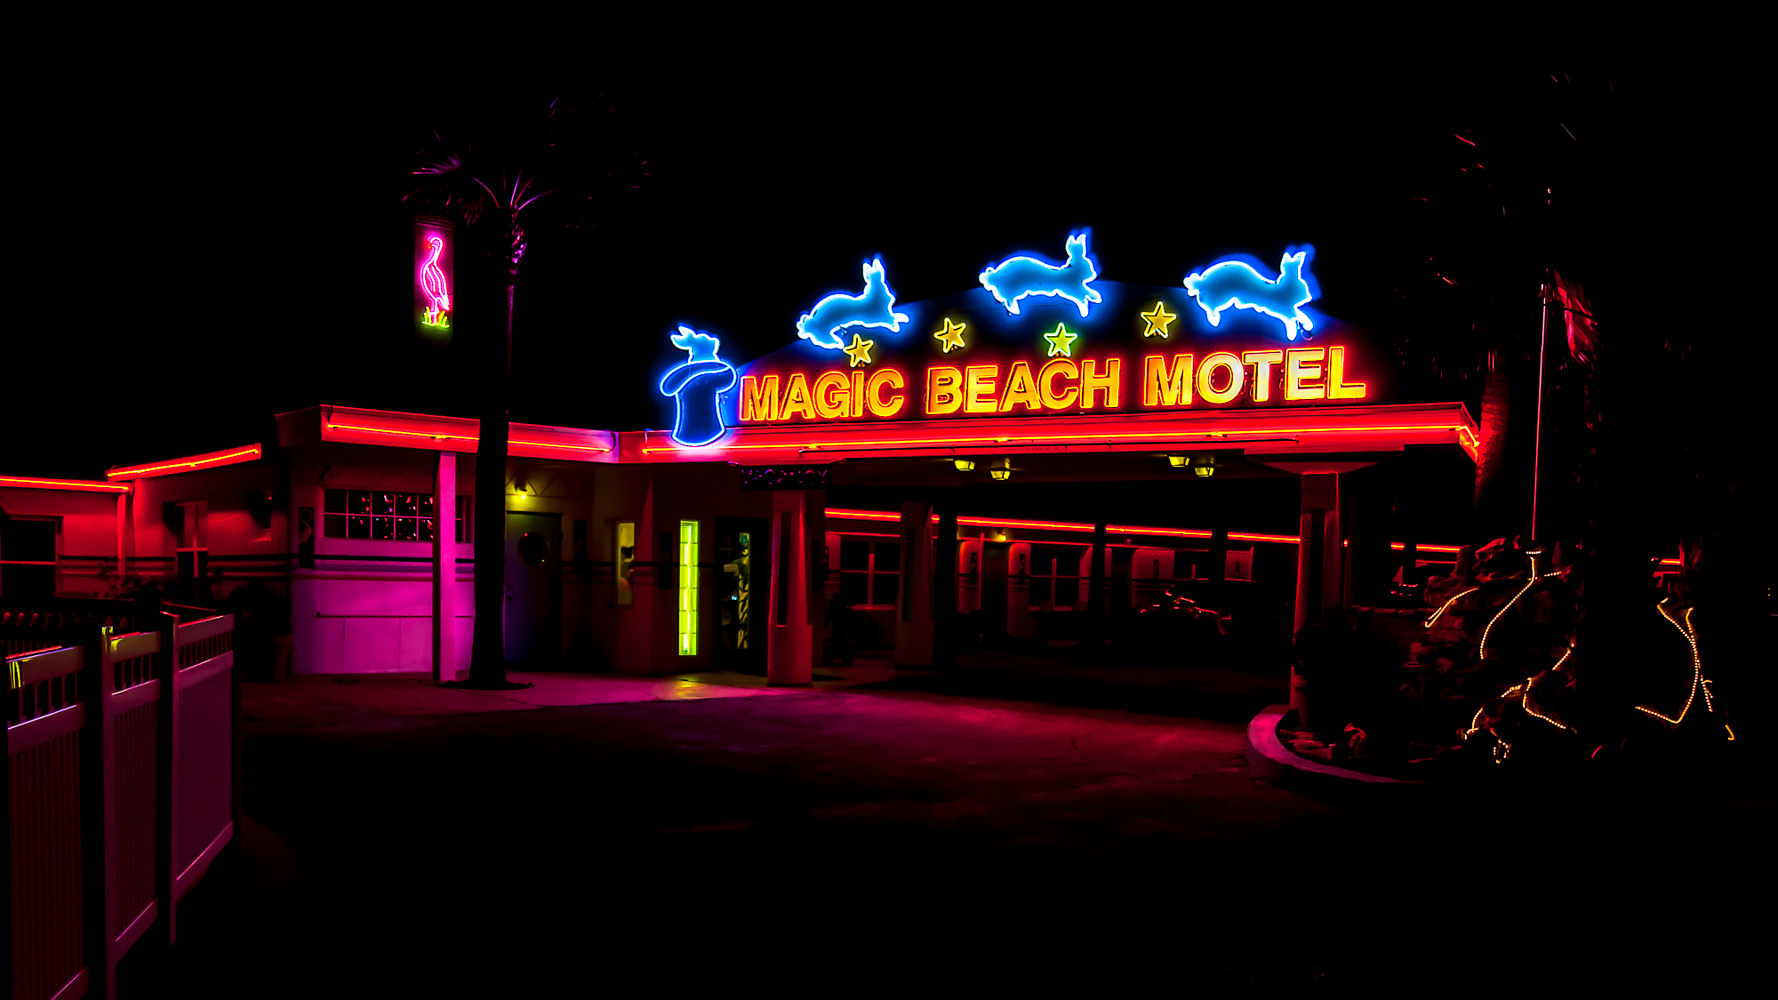 Magic Beach Motel (PL41_1161C) by Gary Jones